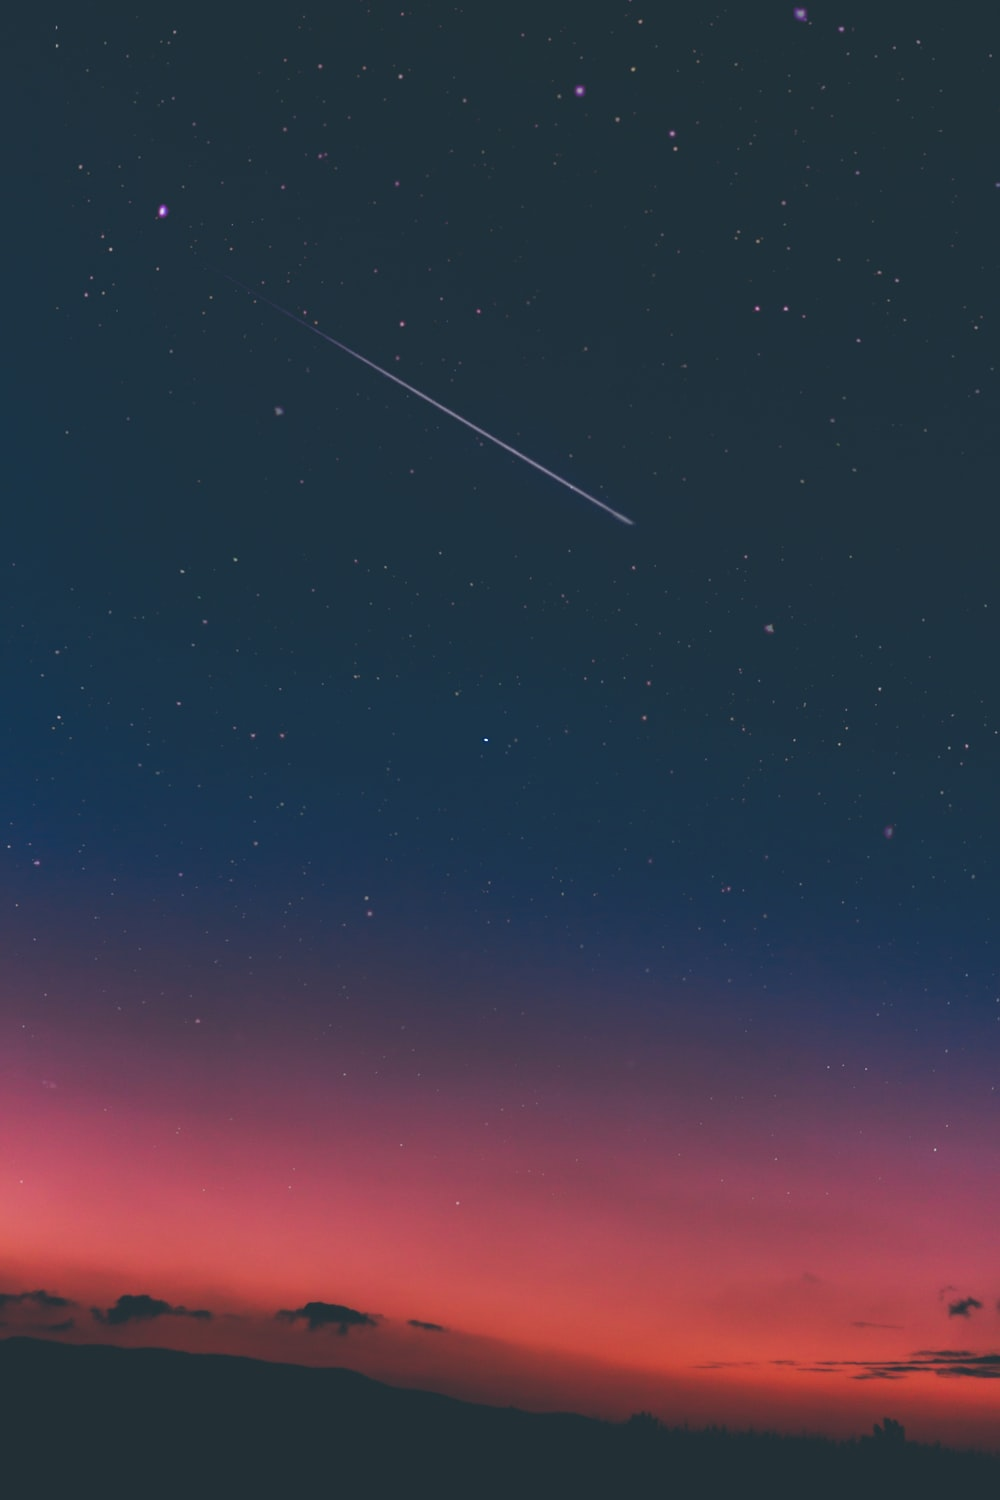 20 Best Free Star Pictures On Unsplash